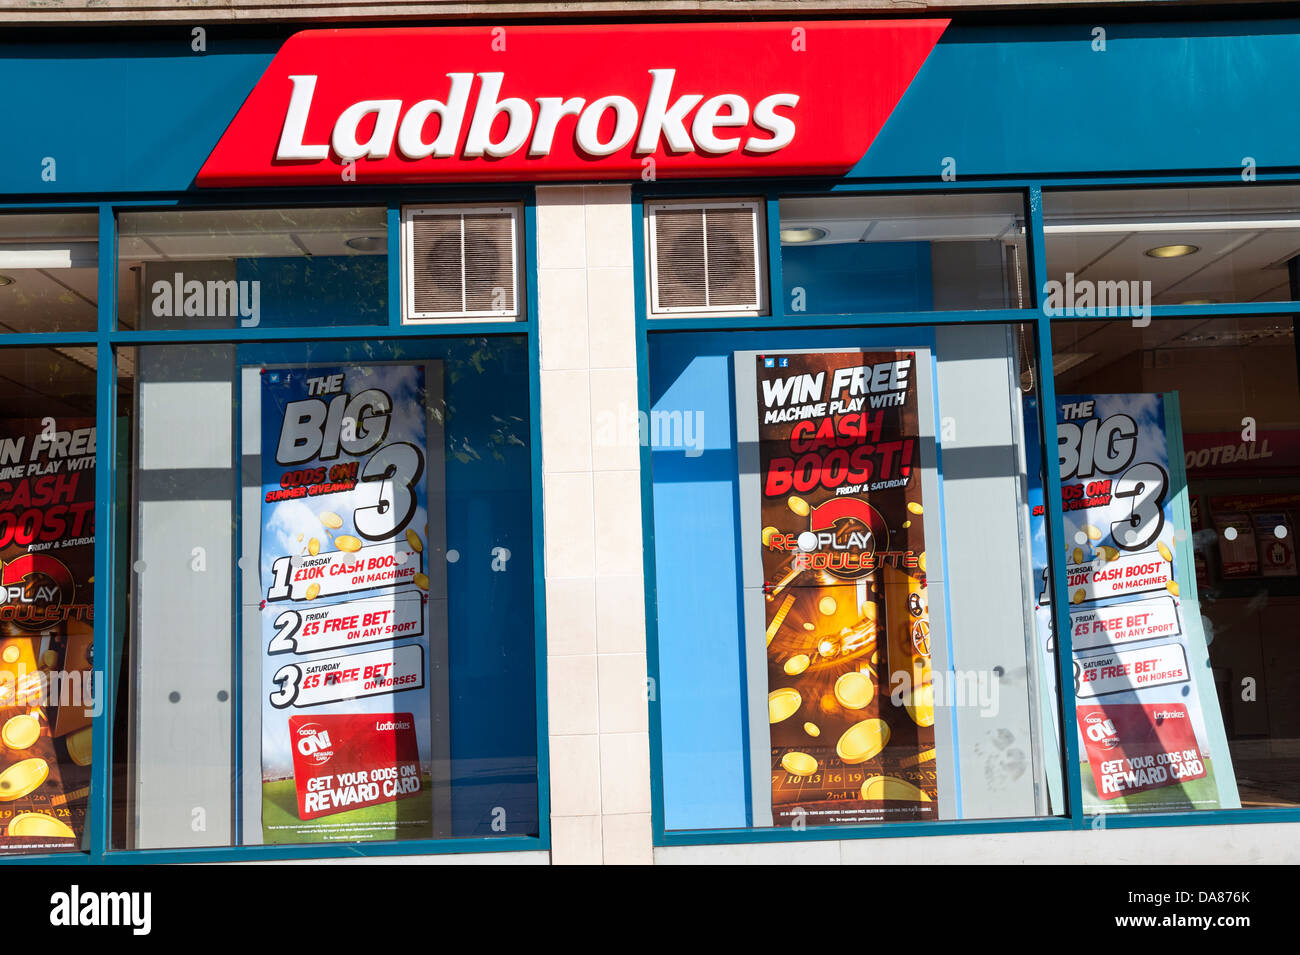 Ladbrokes bookmakers, UK. - Stock Image